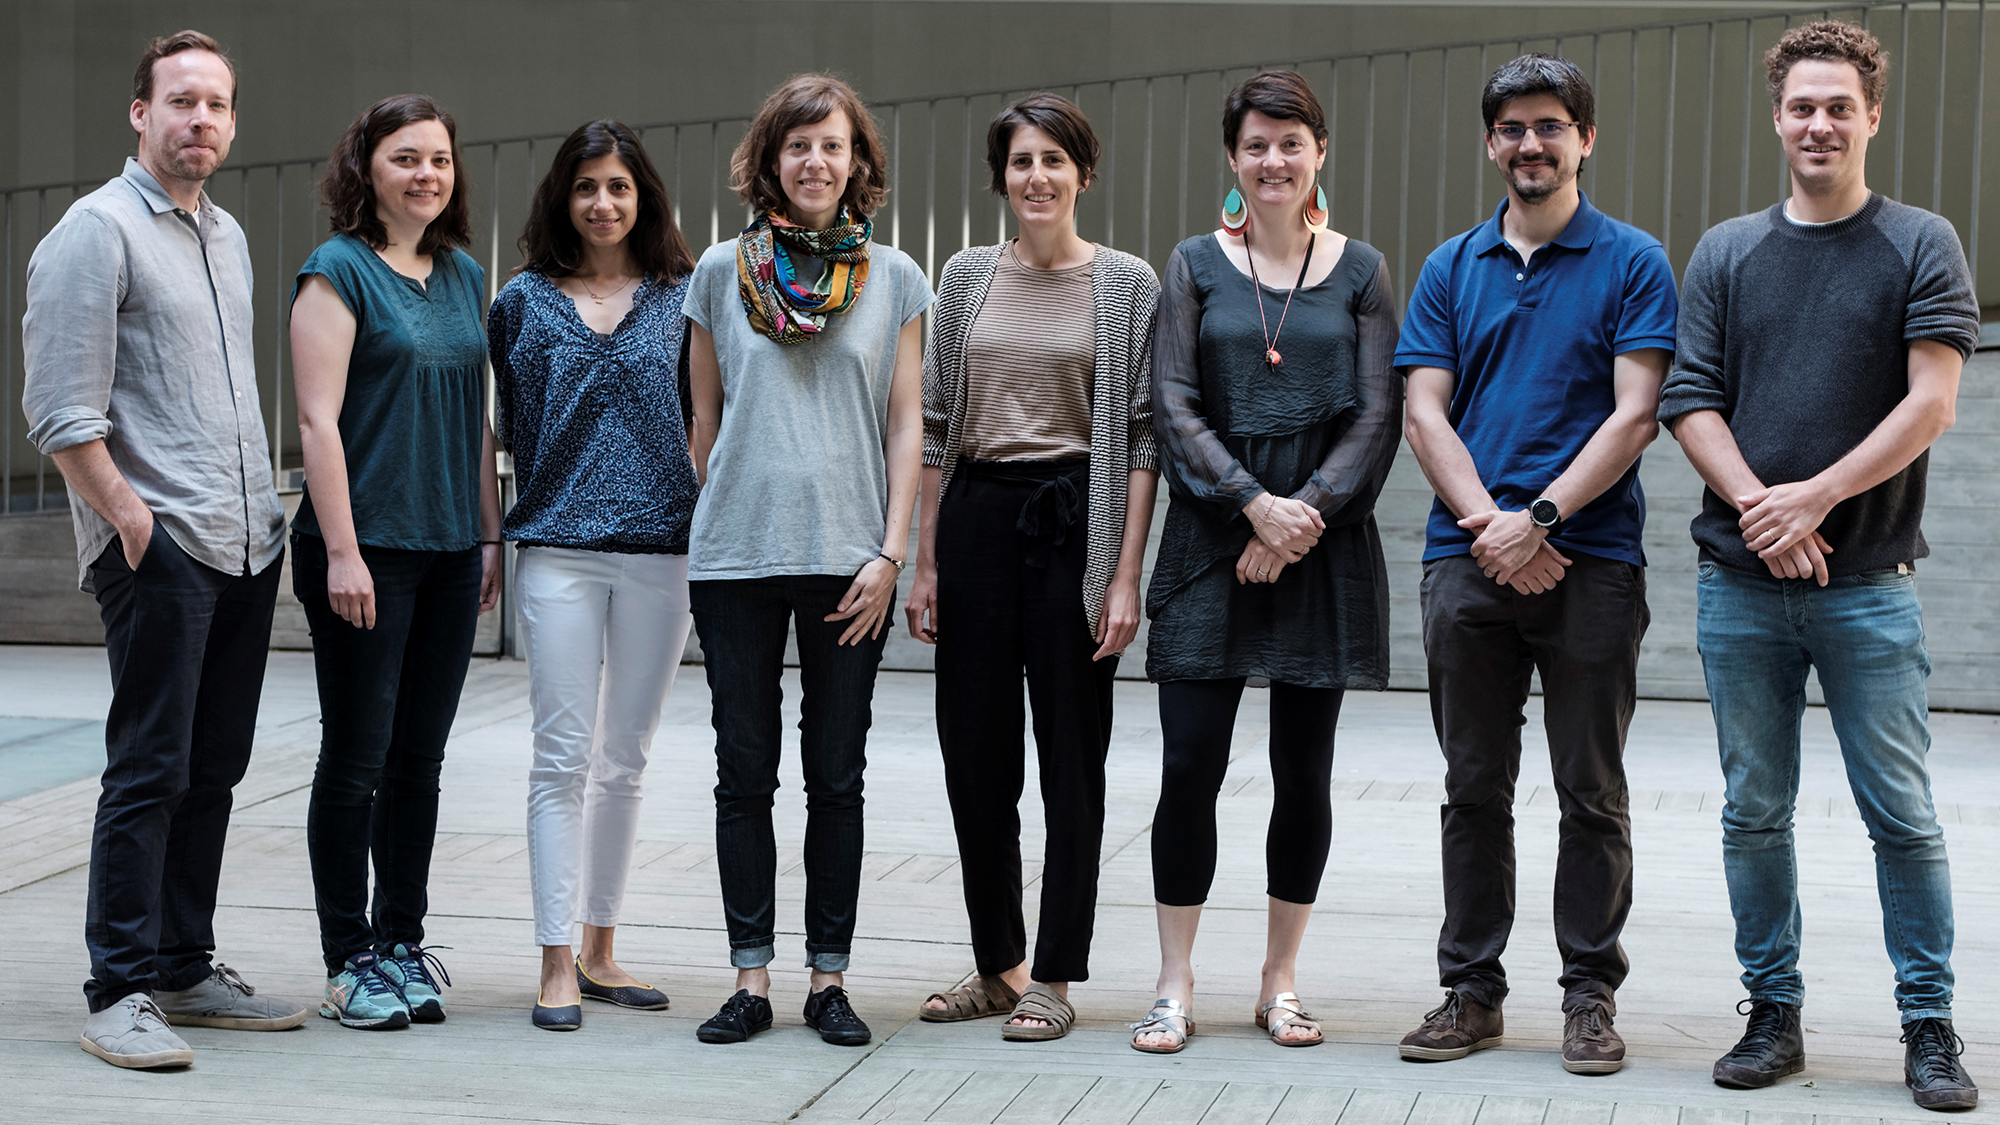 The Anguelovski lab works on so-called urban environmental justice, studying how creating green cities differentially impacts various groups of the population.